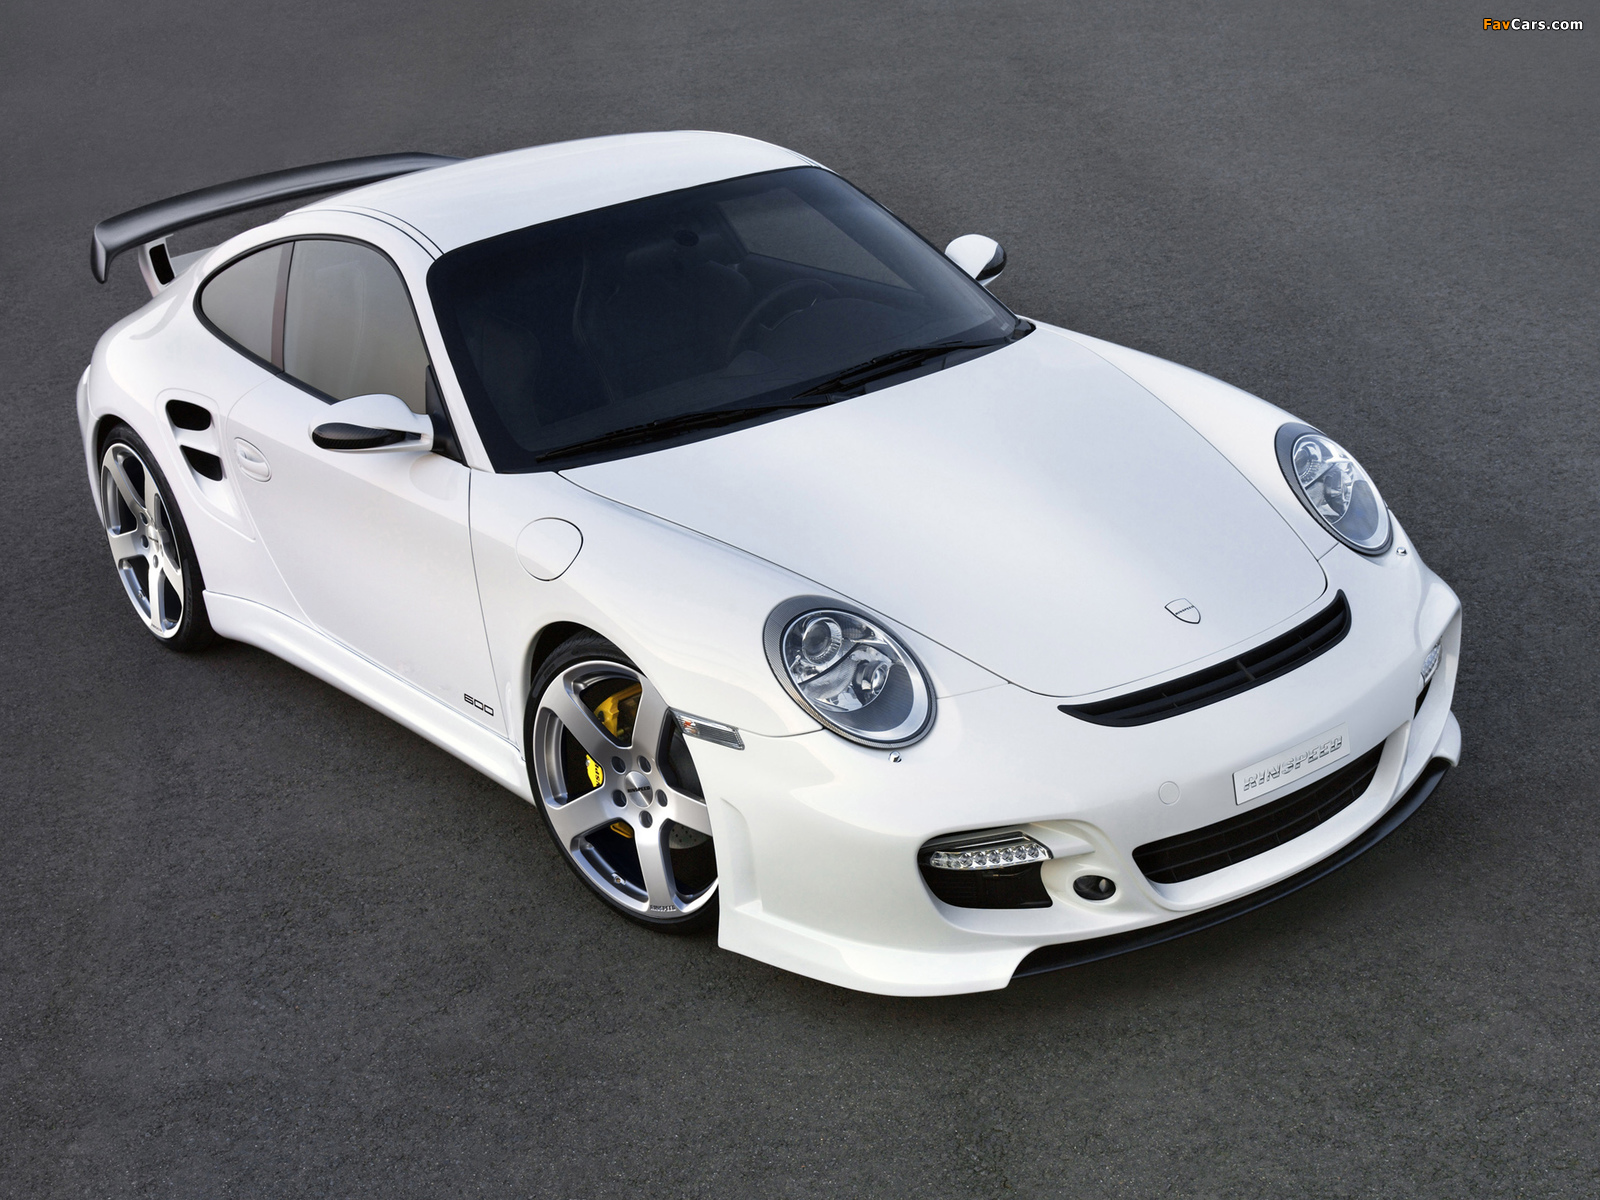 Rinspeed LeMans based on Porsche 911 Turbo (997) 2007 wallpapers (1600 x 1200)